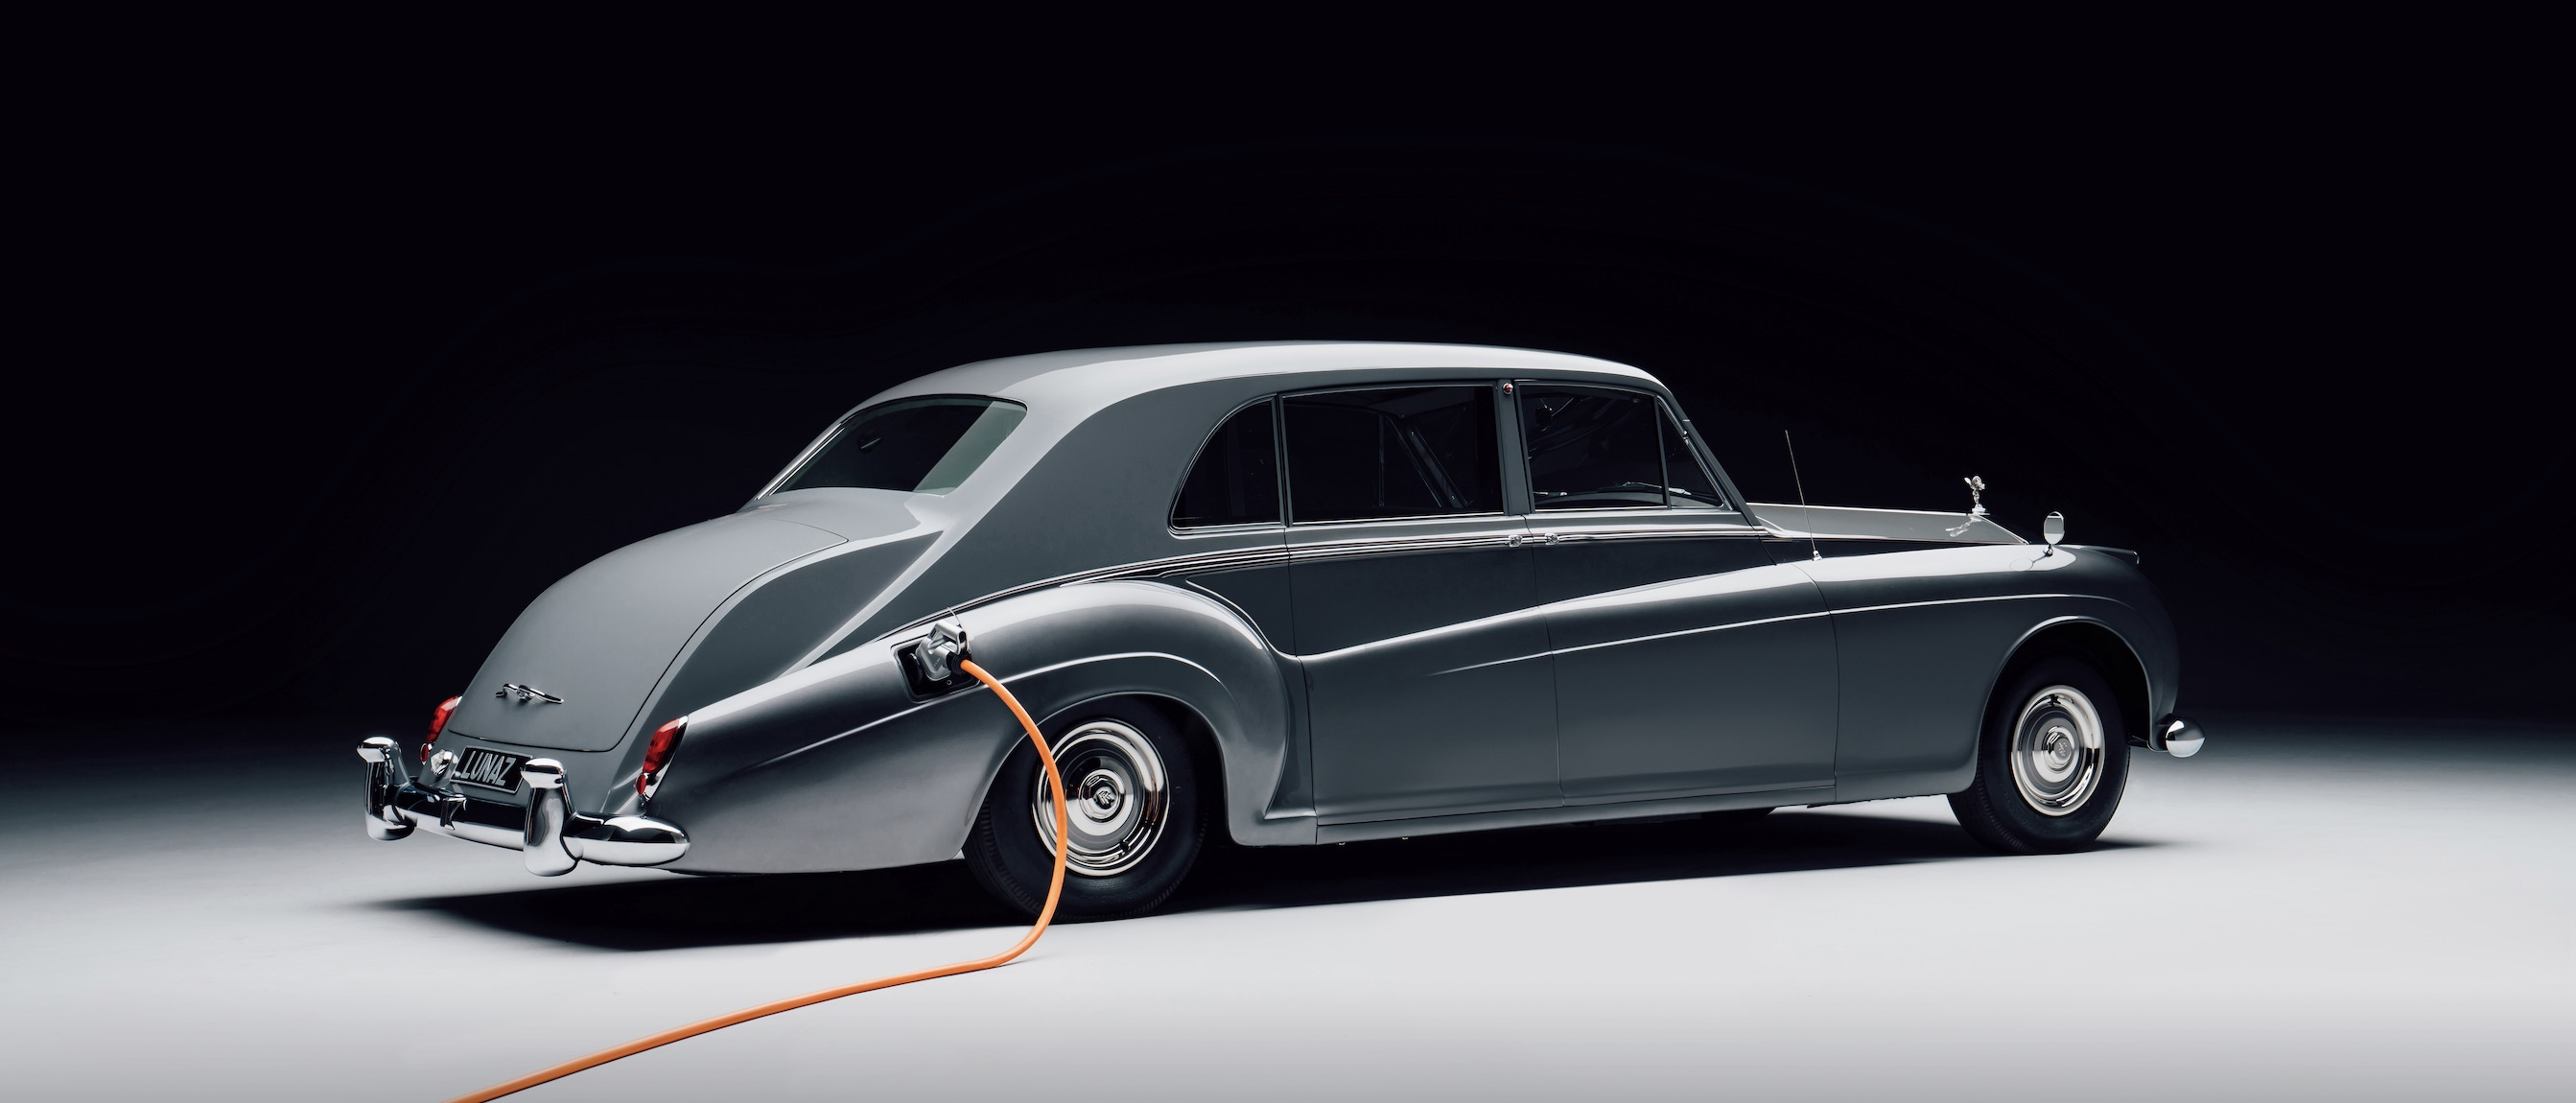 Classic Rolls-Royce cars are going into production with ...